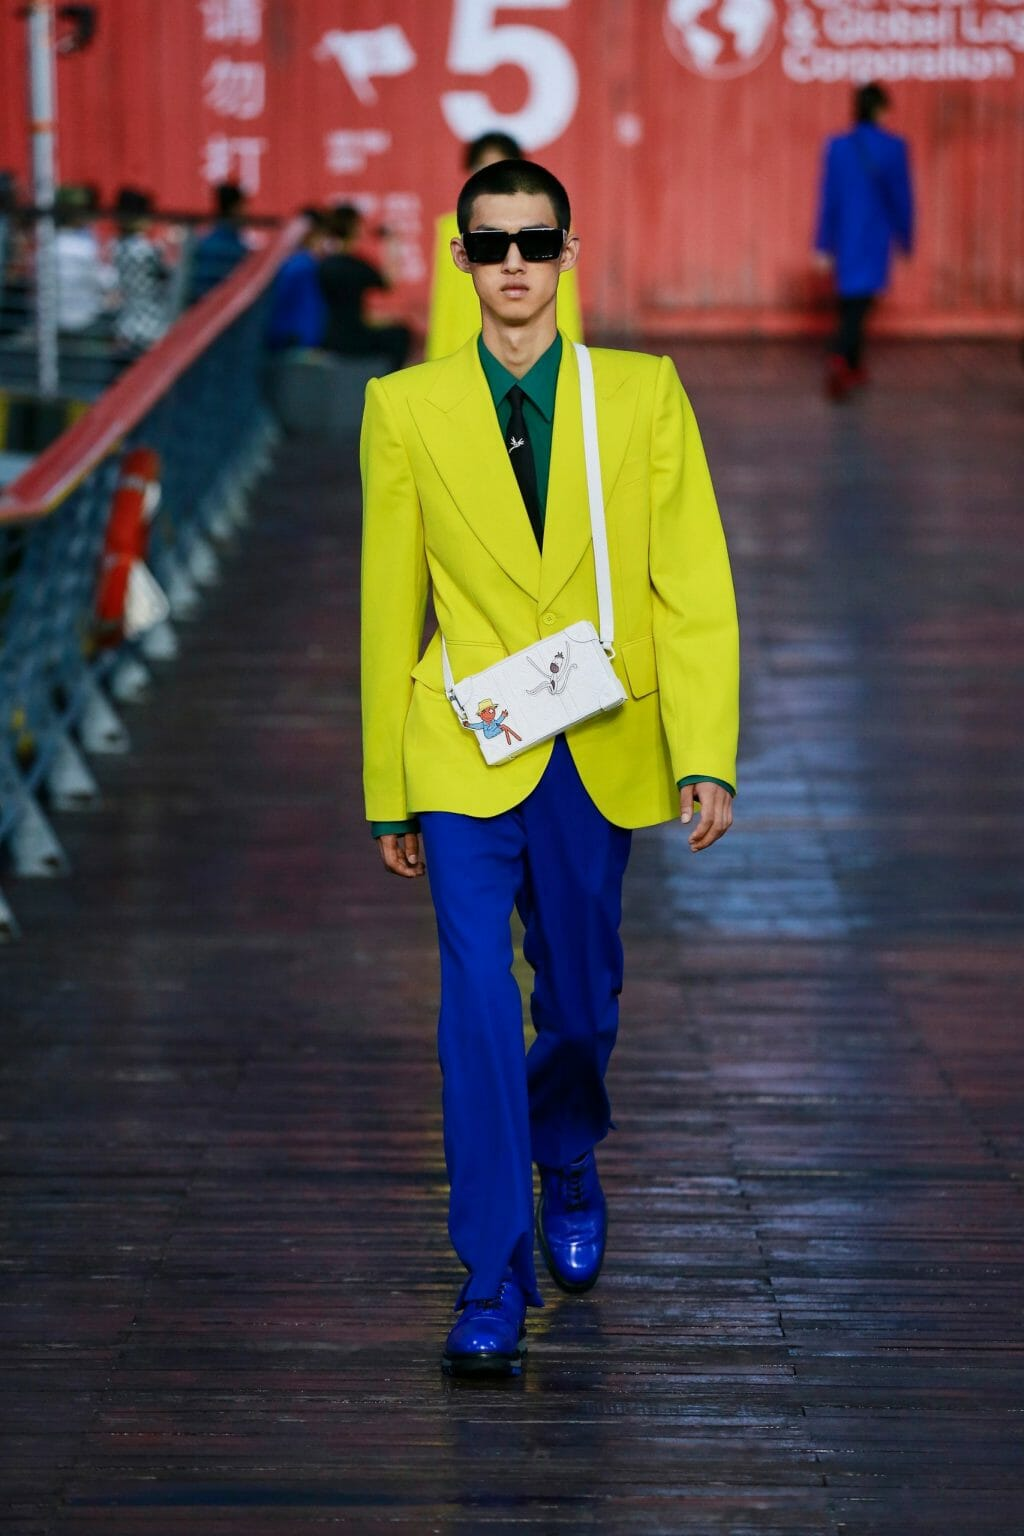 Louis Vuitton Men's Spring Summer 2021 show